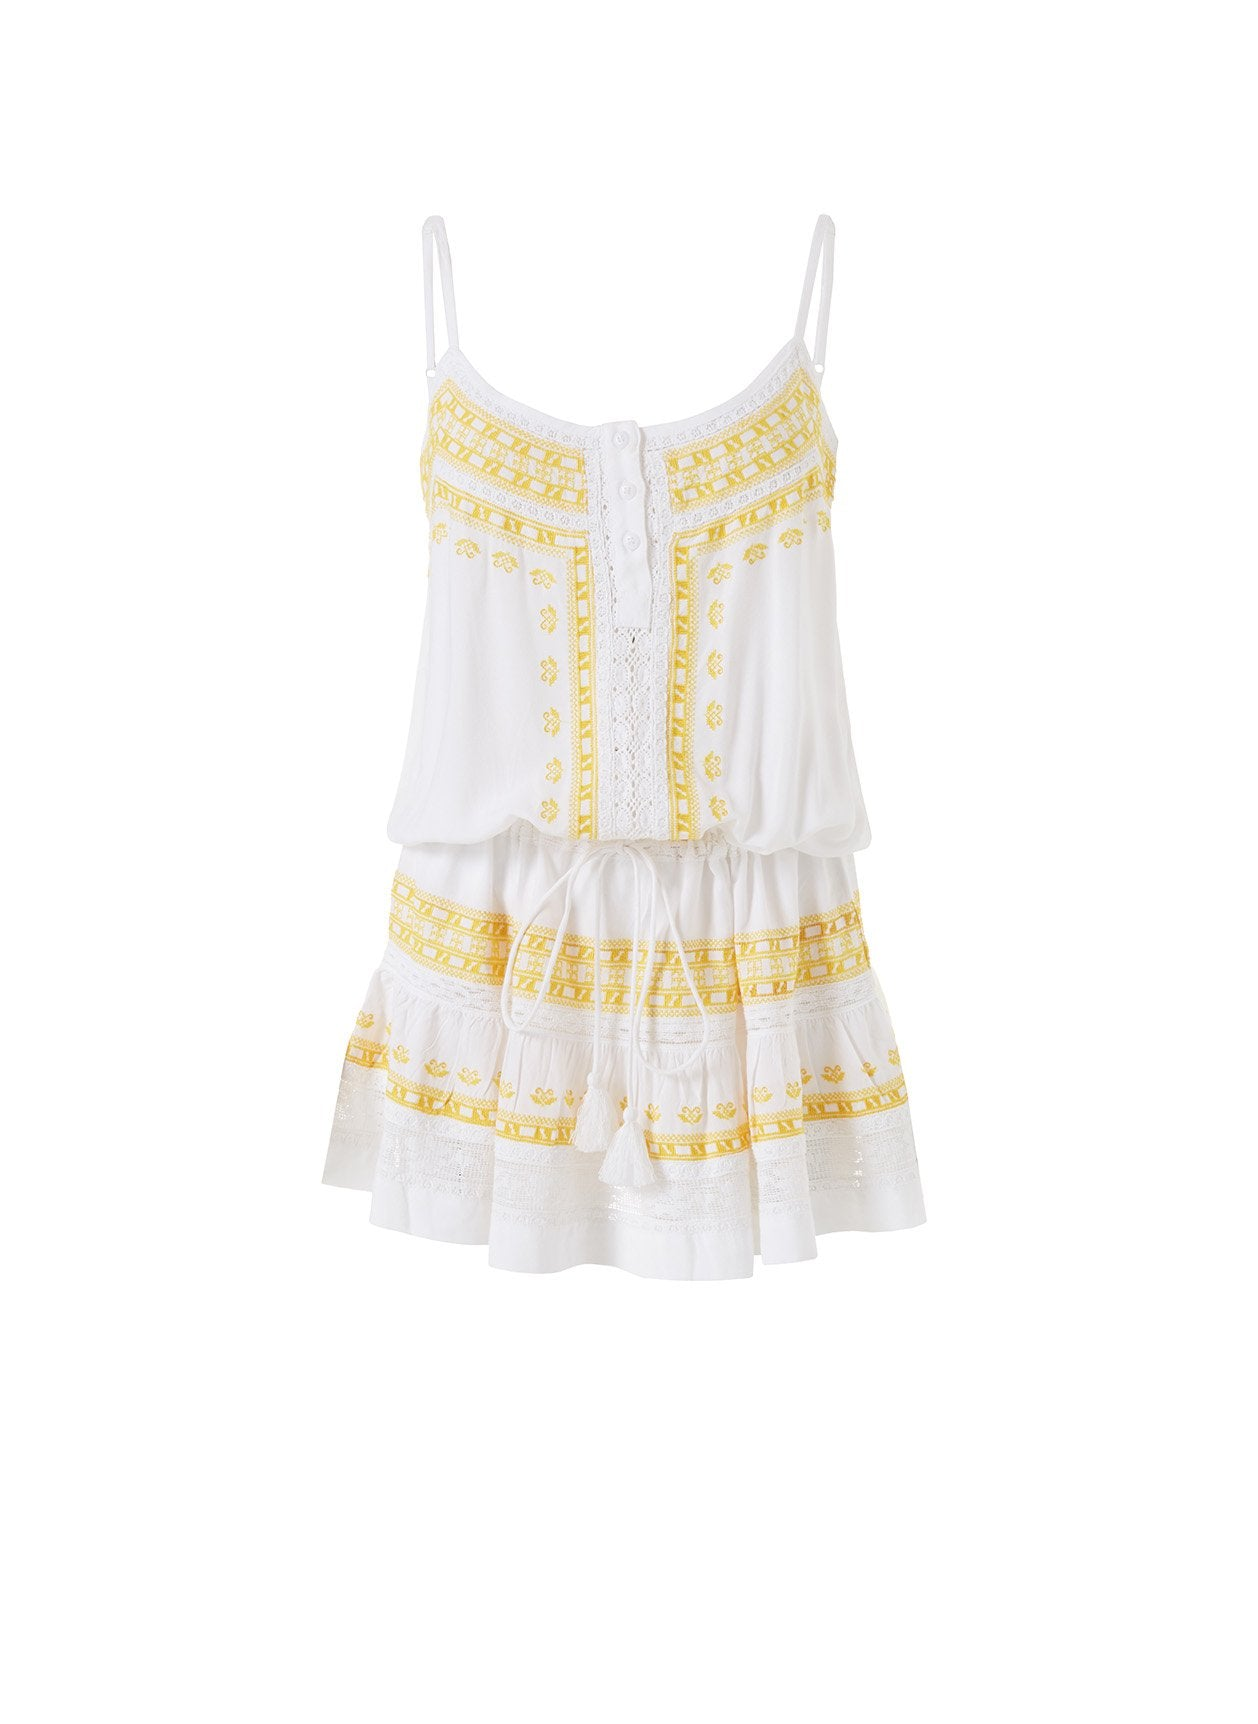 Karen White/Yellow Embroidered Over The Shoulder Short Dress 2020